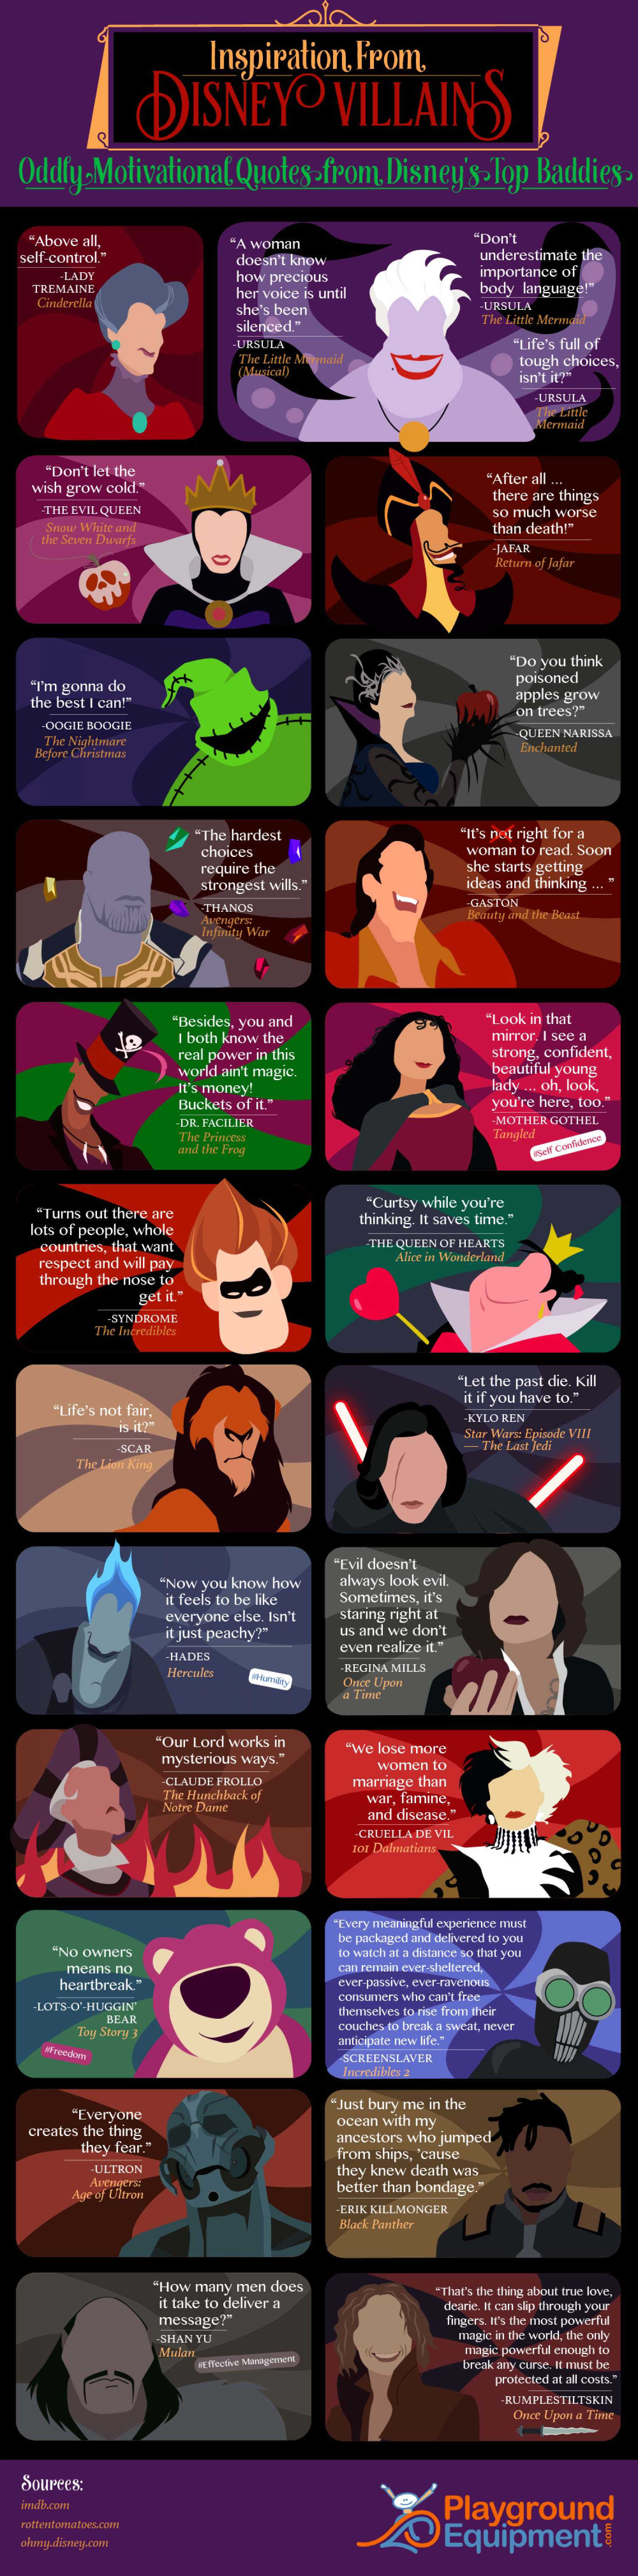 Inspiration from Disney Villains: Oddly Motivational Quotes from Disney's Top Baddies Infographic